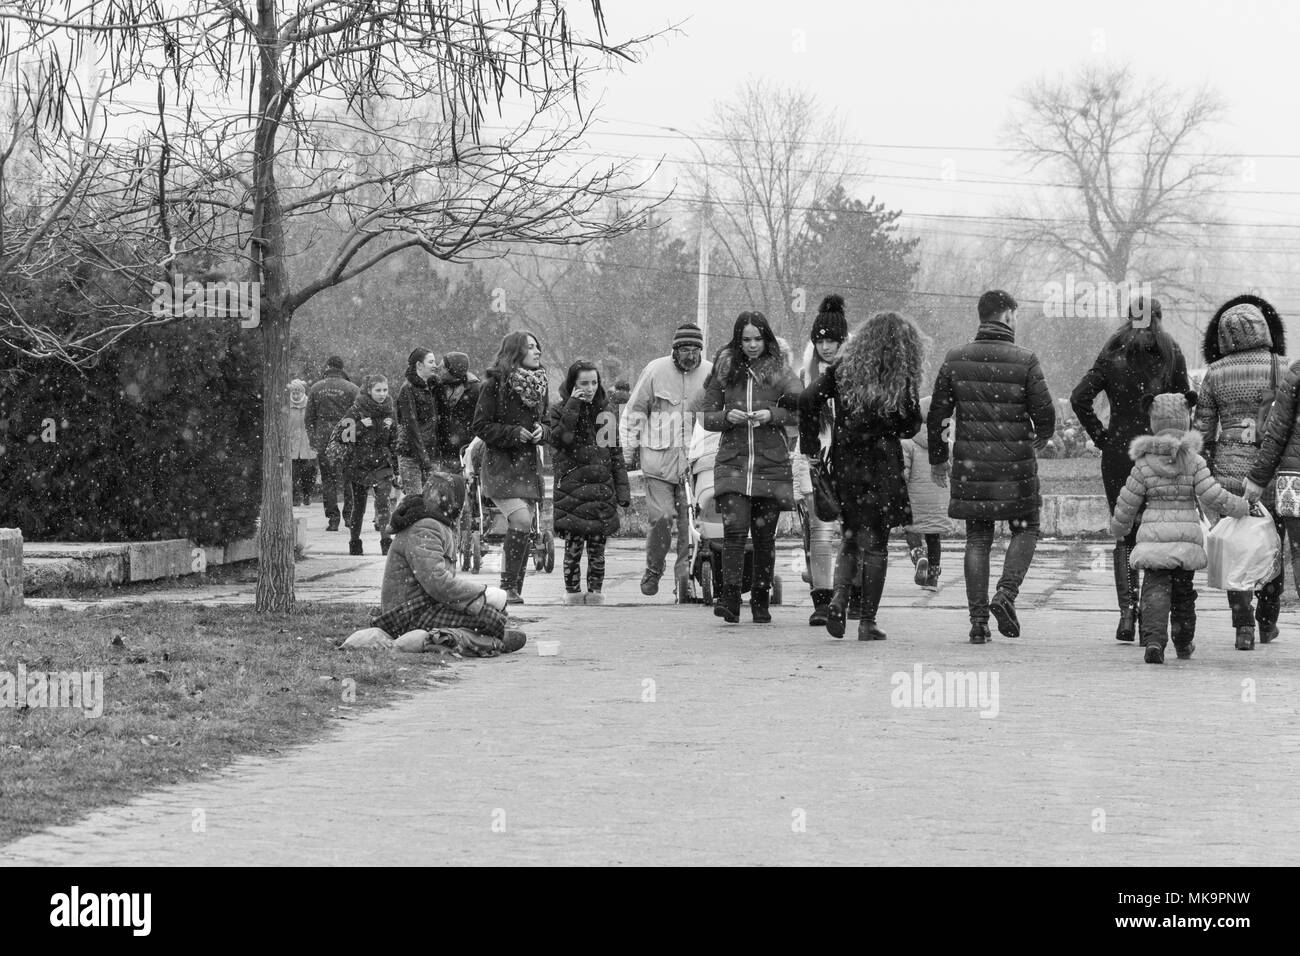 A group of people walking through a winter park, a reportage photo in black and white. - Stock Image